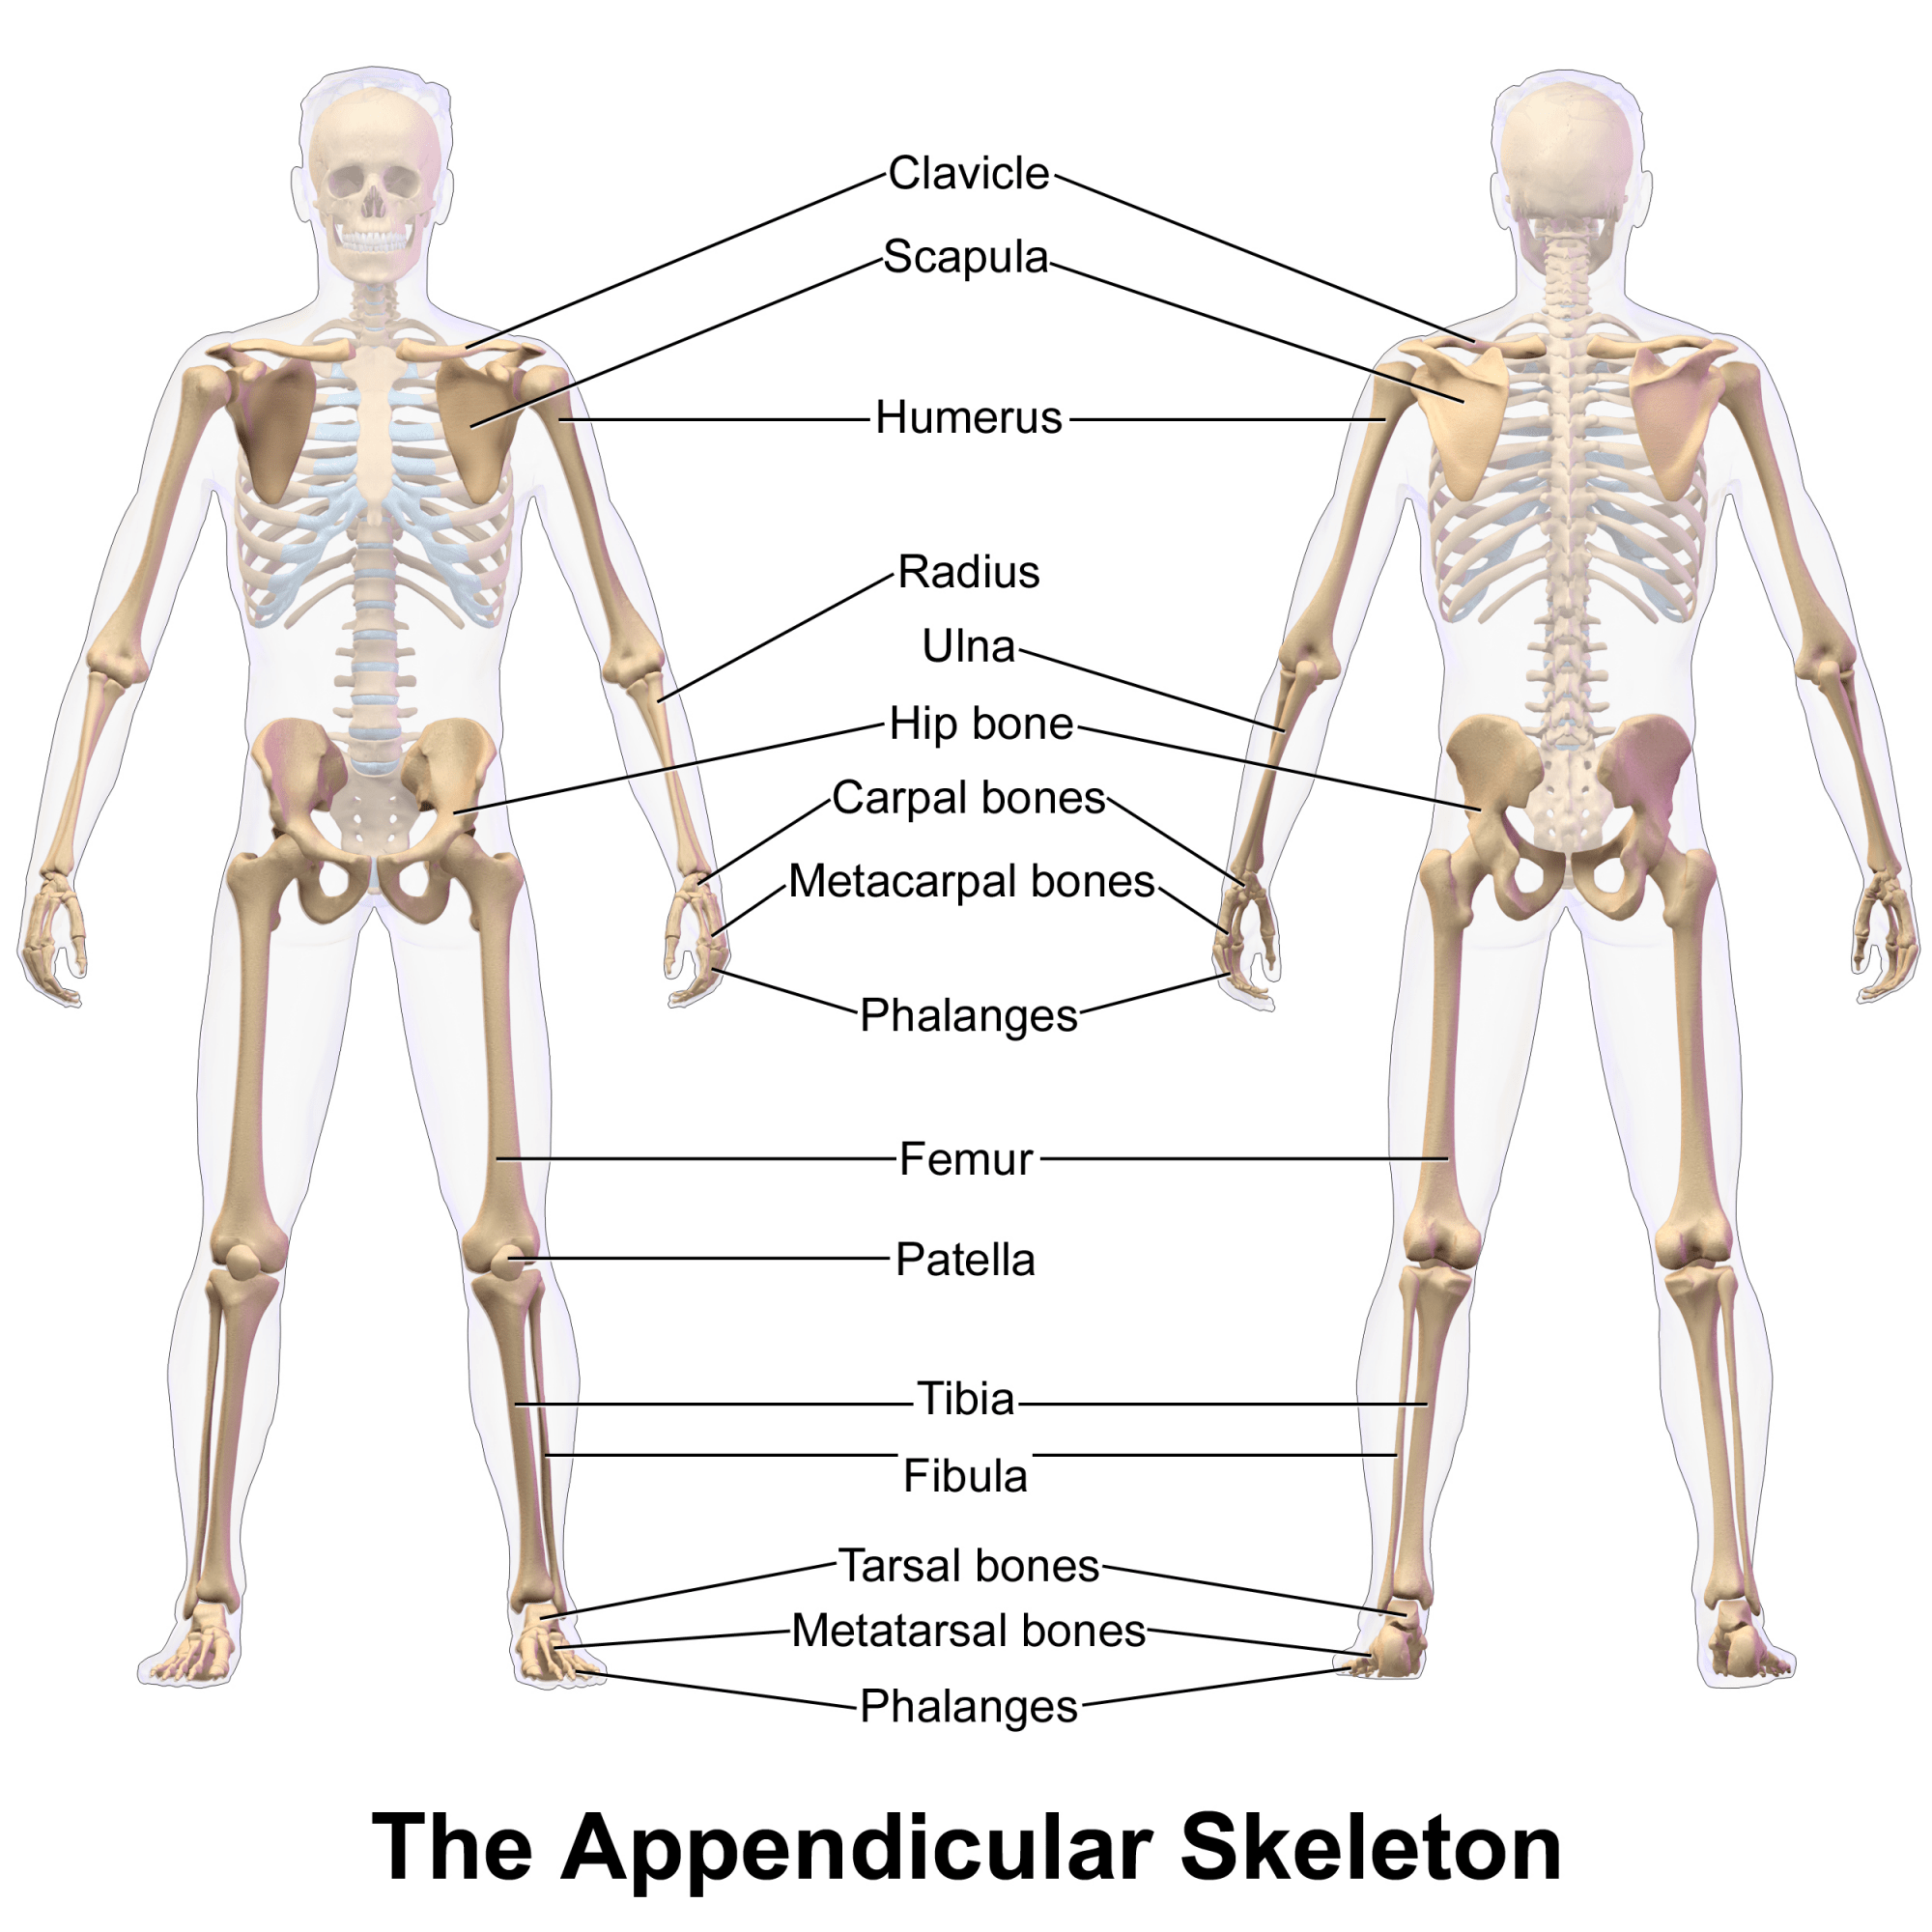 The Appendicular Skeleton Of Human Body